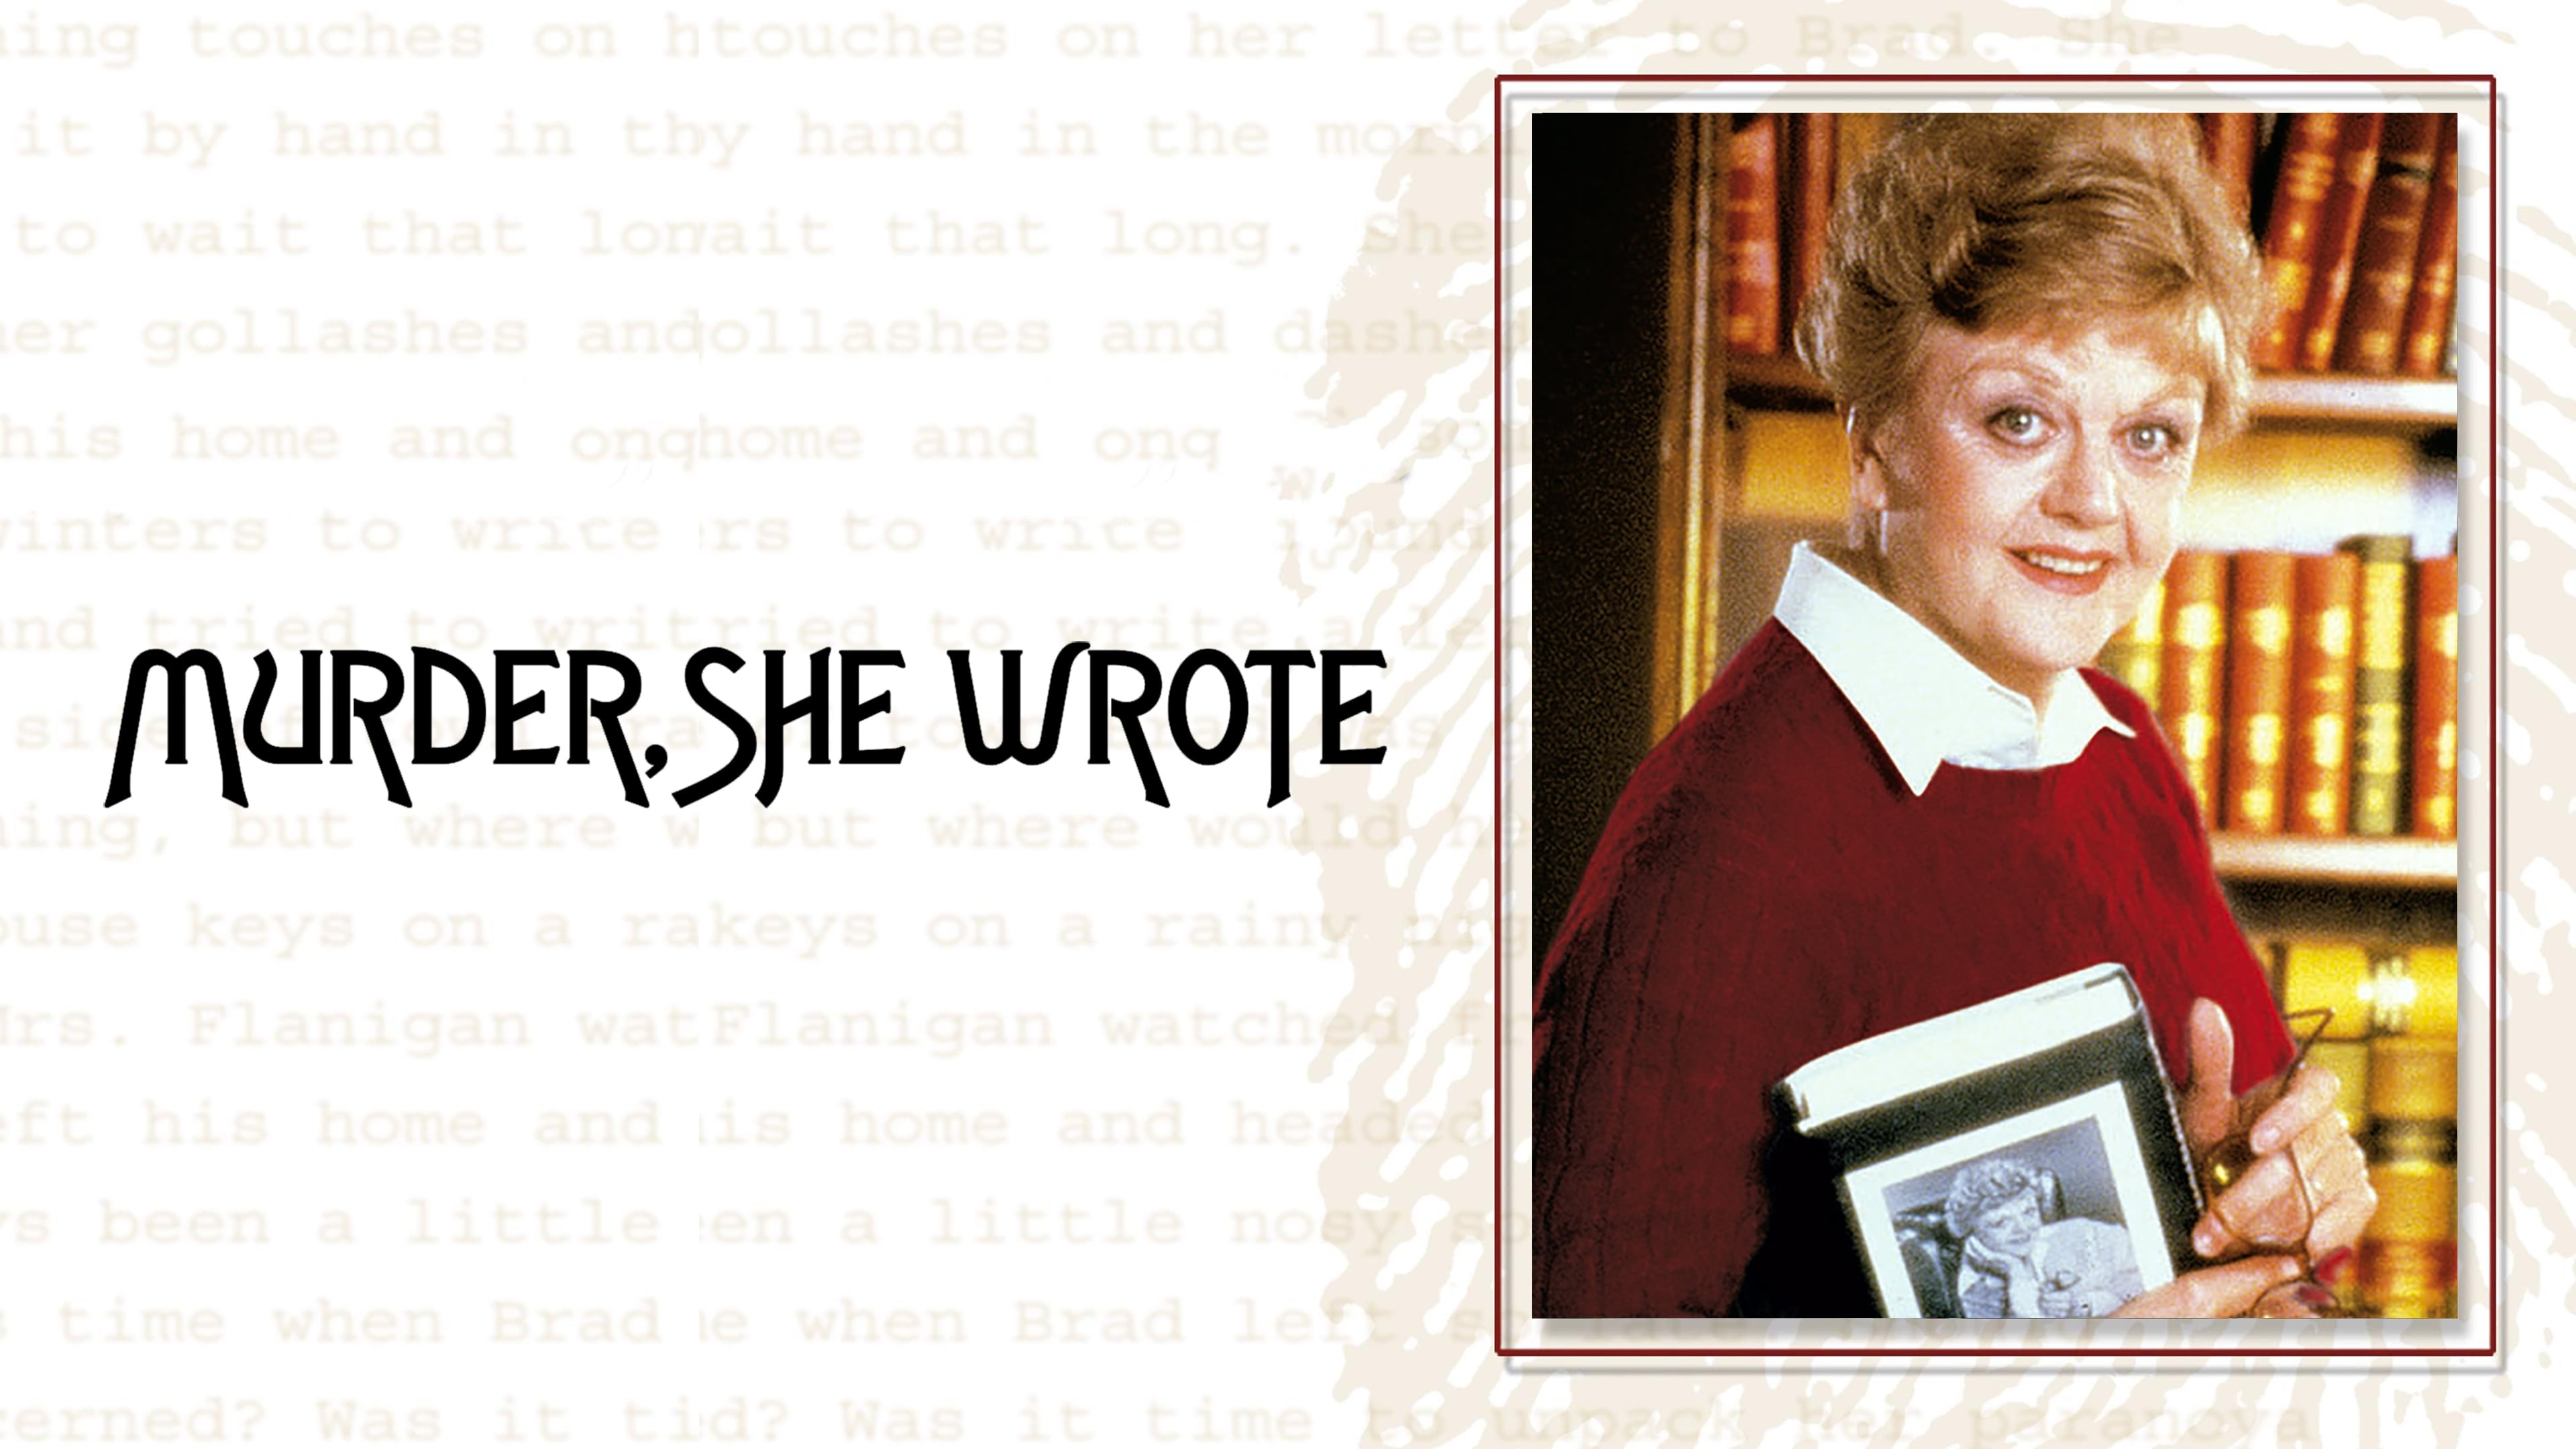 Murder, She Wrote - Season 10